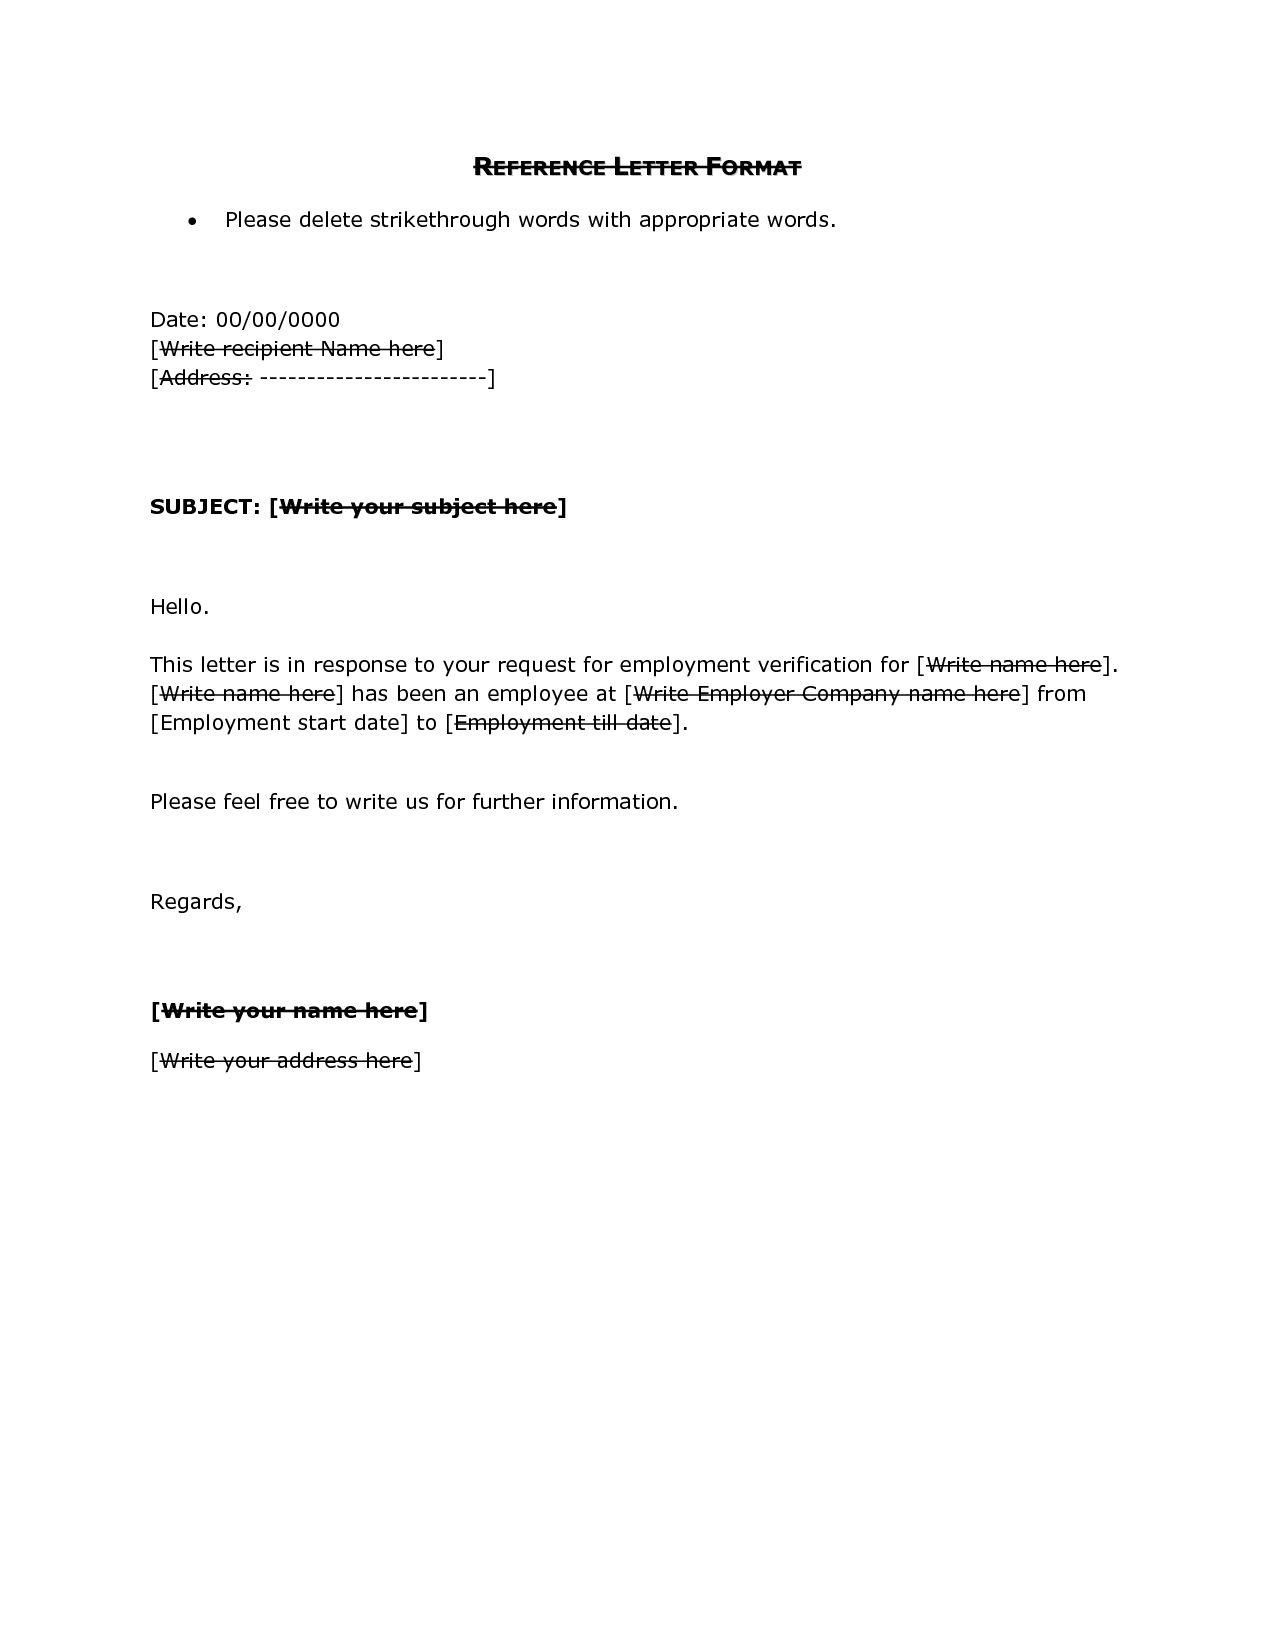 Pin On Reference Letter